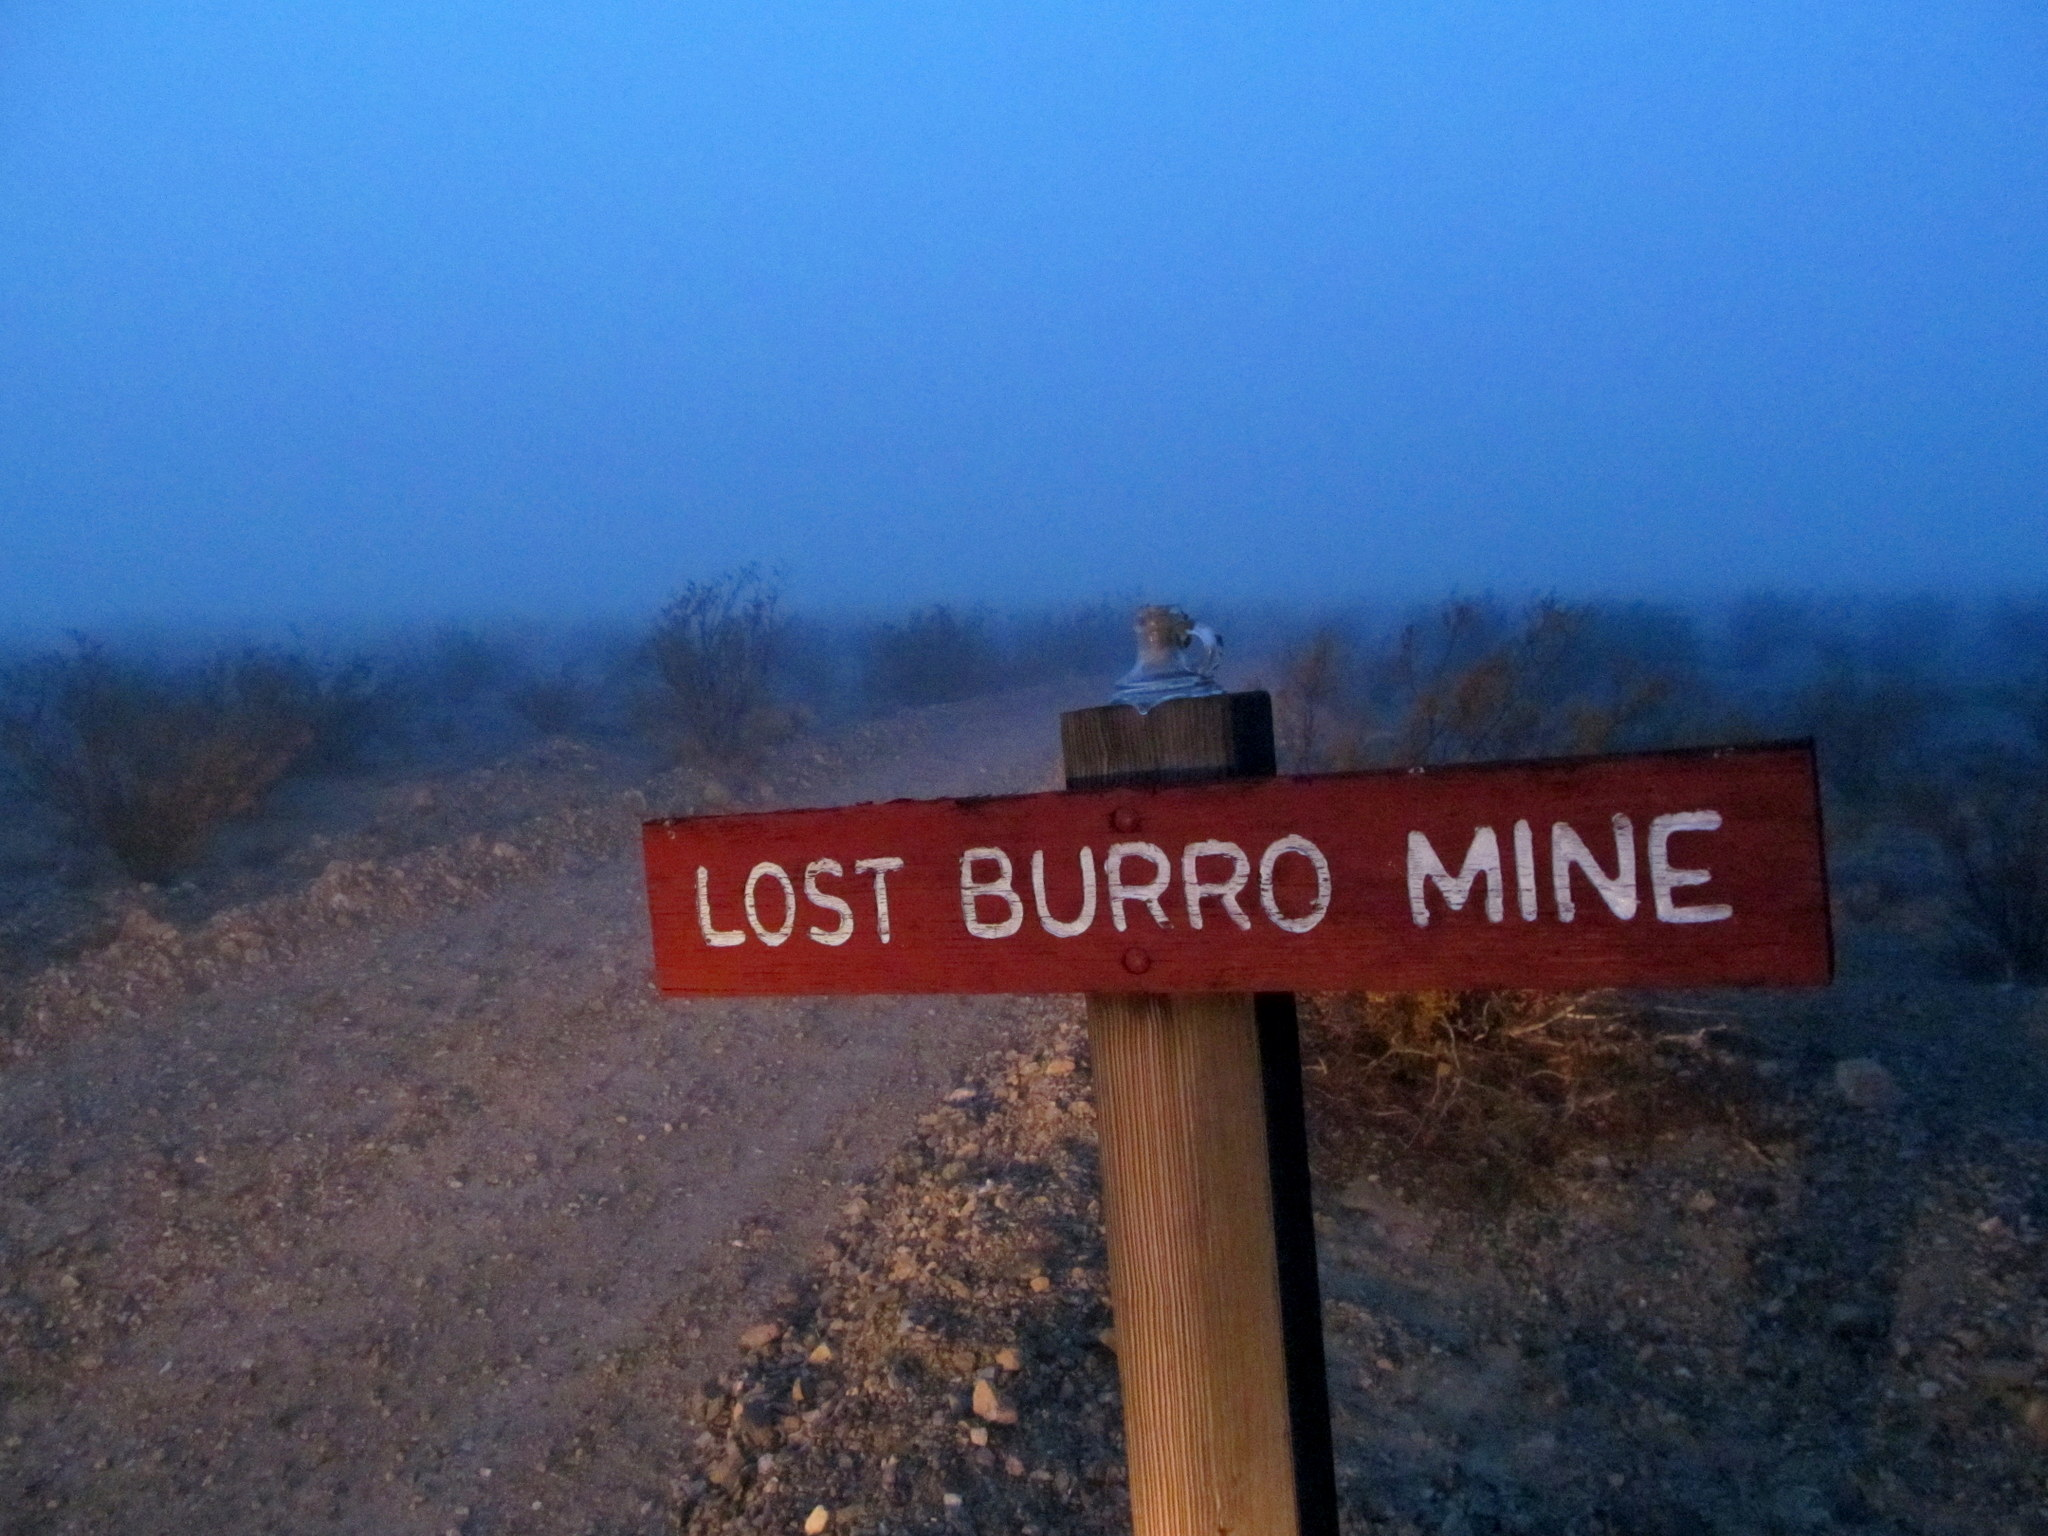 Photo: Sign for the Lost Burro Mine